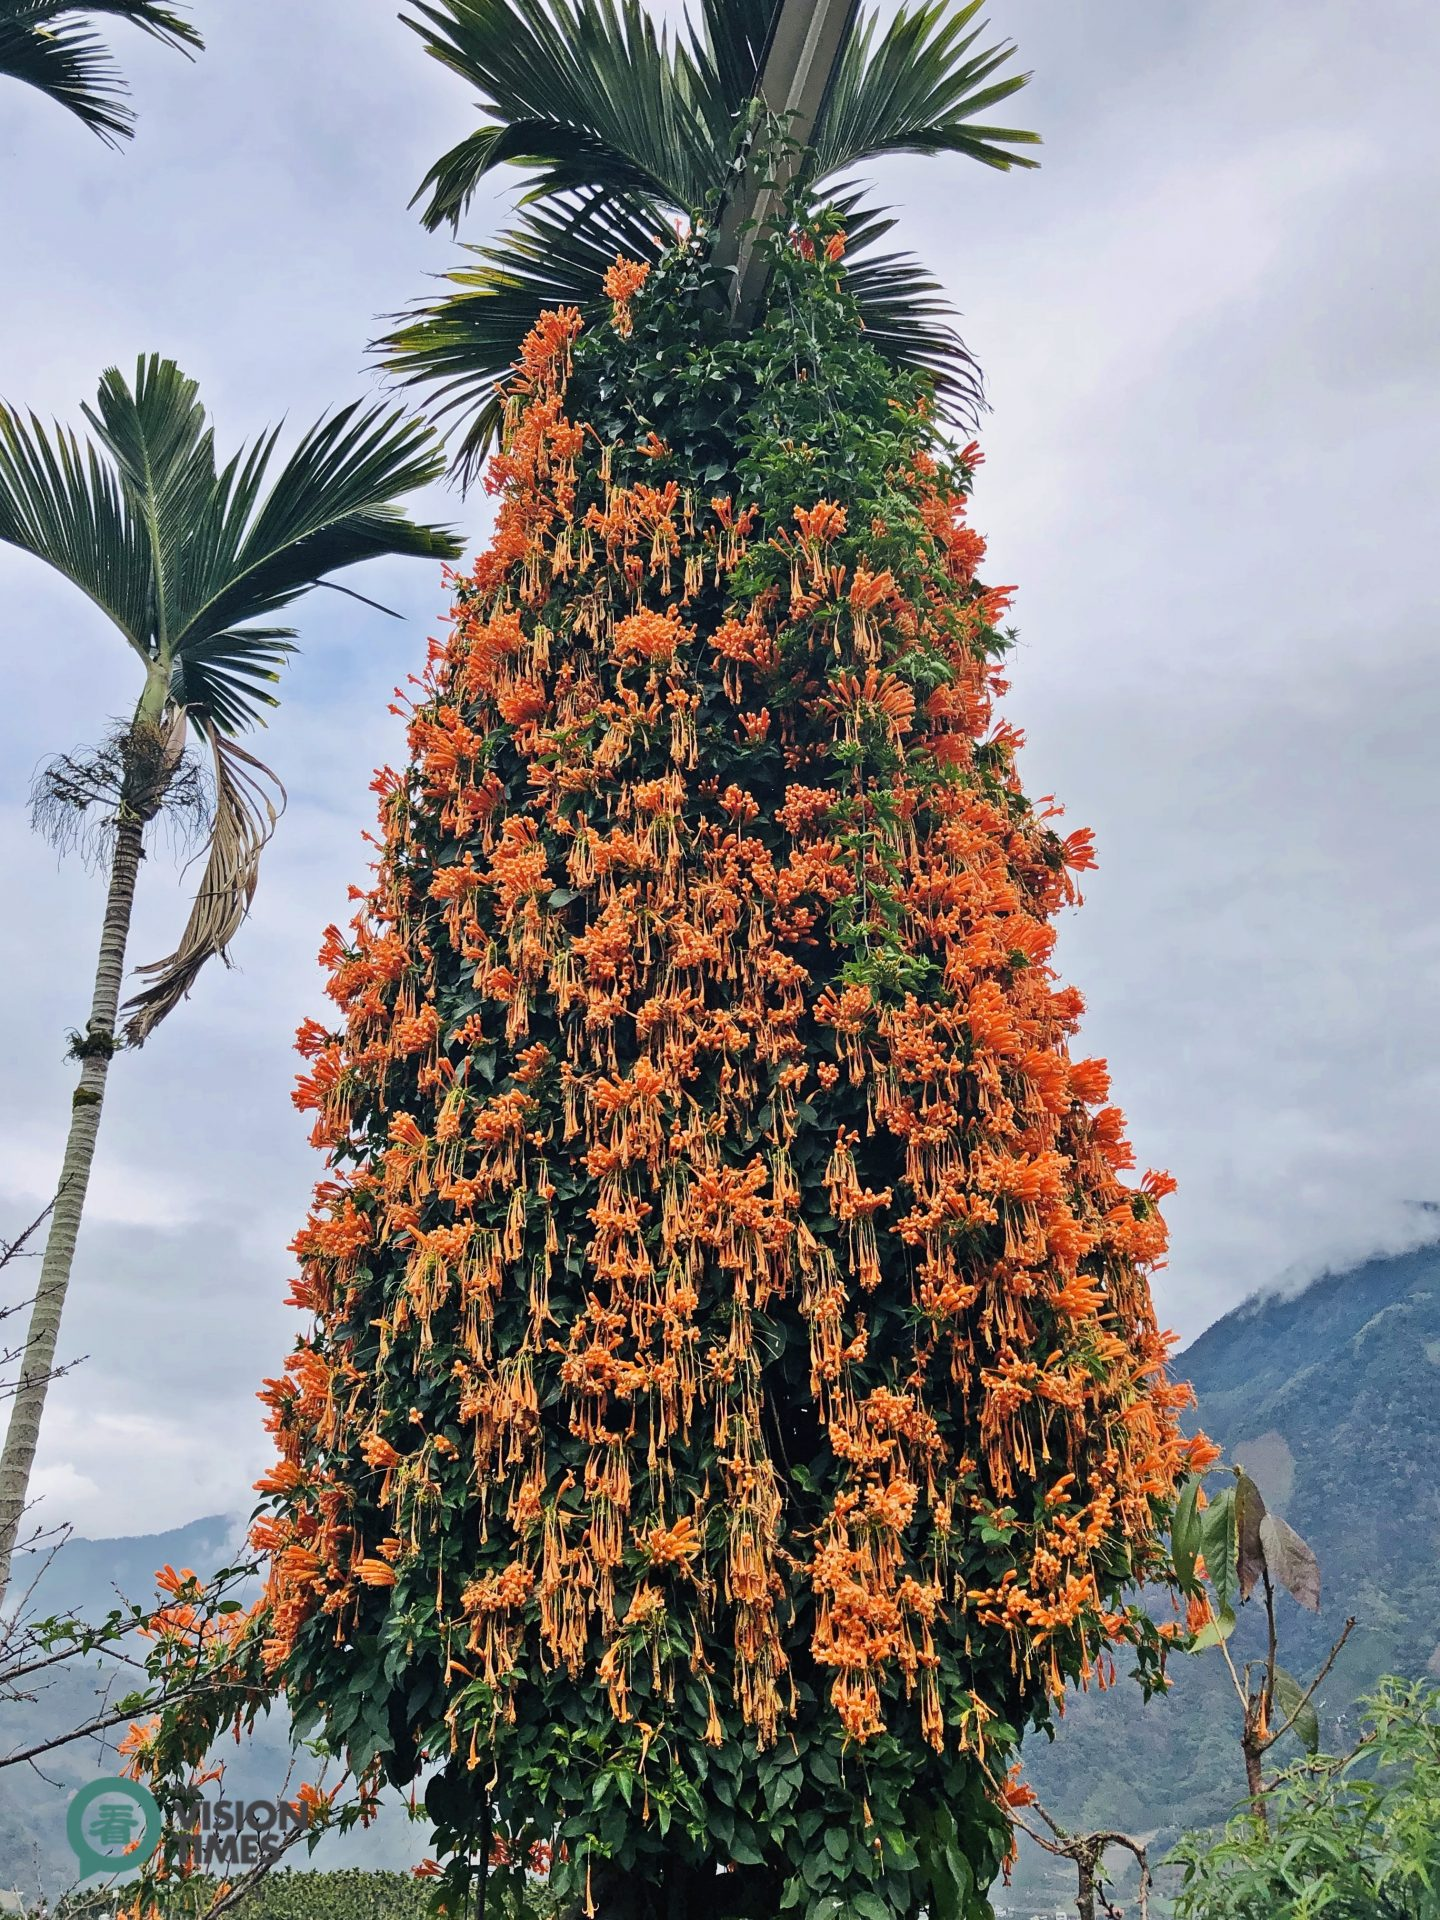 The beautiful Pyrostegia Venusta (炮仗花) is well growing around a betel nut (Areca catechu) tree. (Image: Julia Fu / Vision Times)